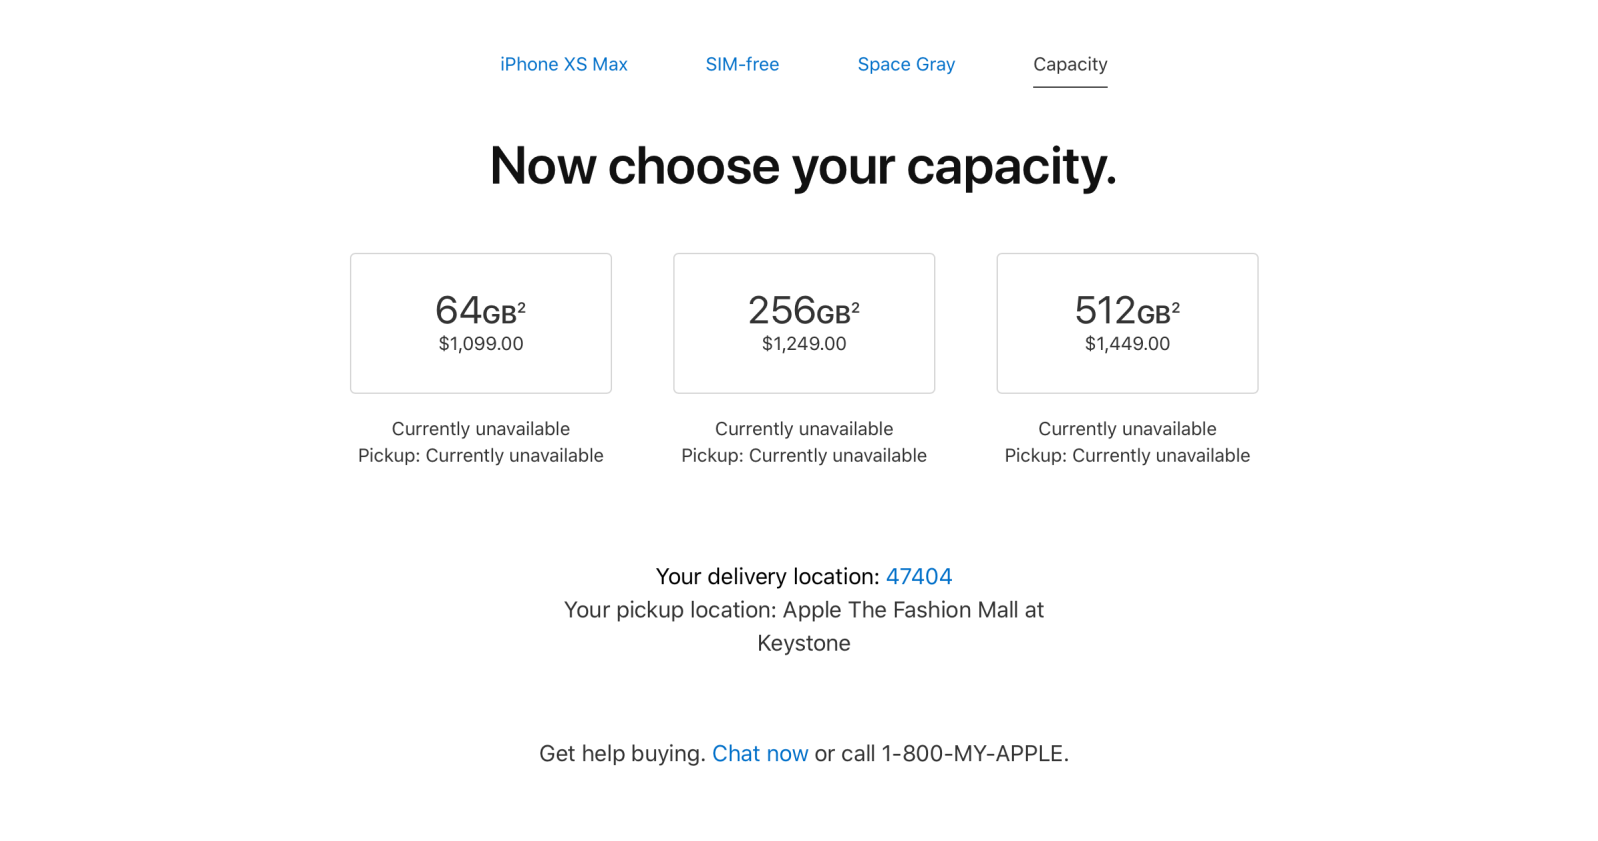 iPhone XS costs $1,349 for 512GB of storage, iPhone XS Max